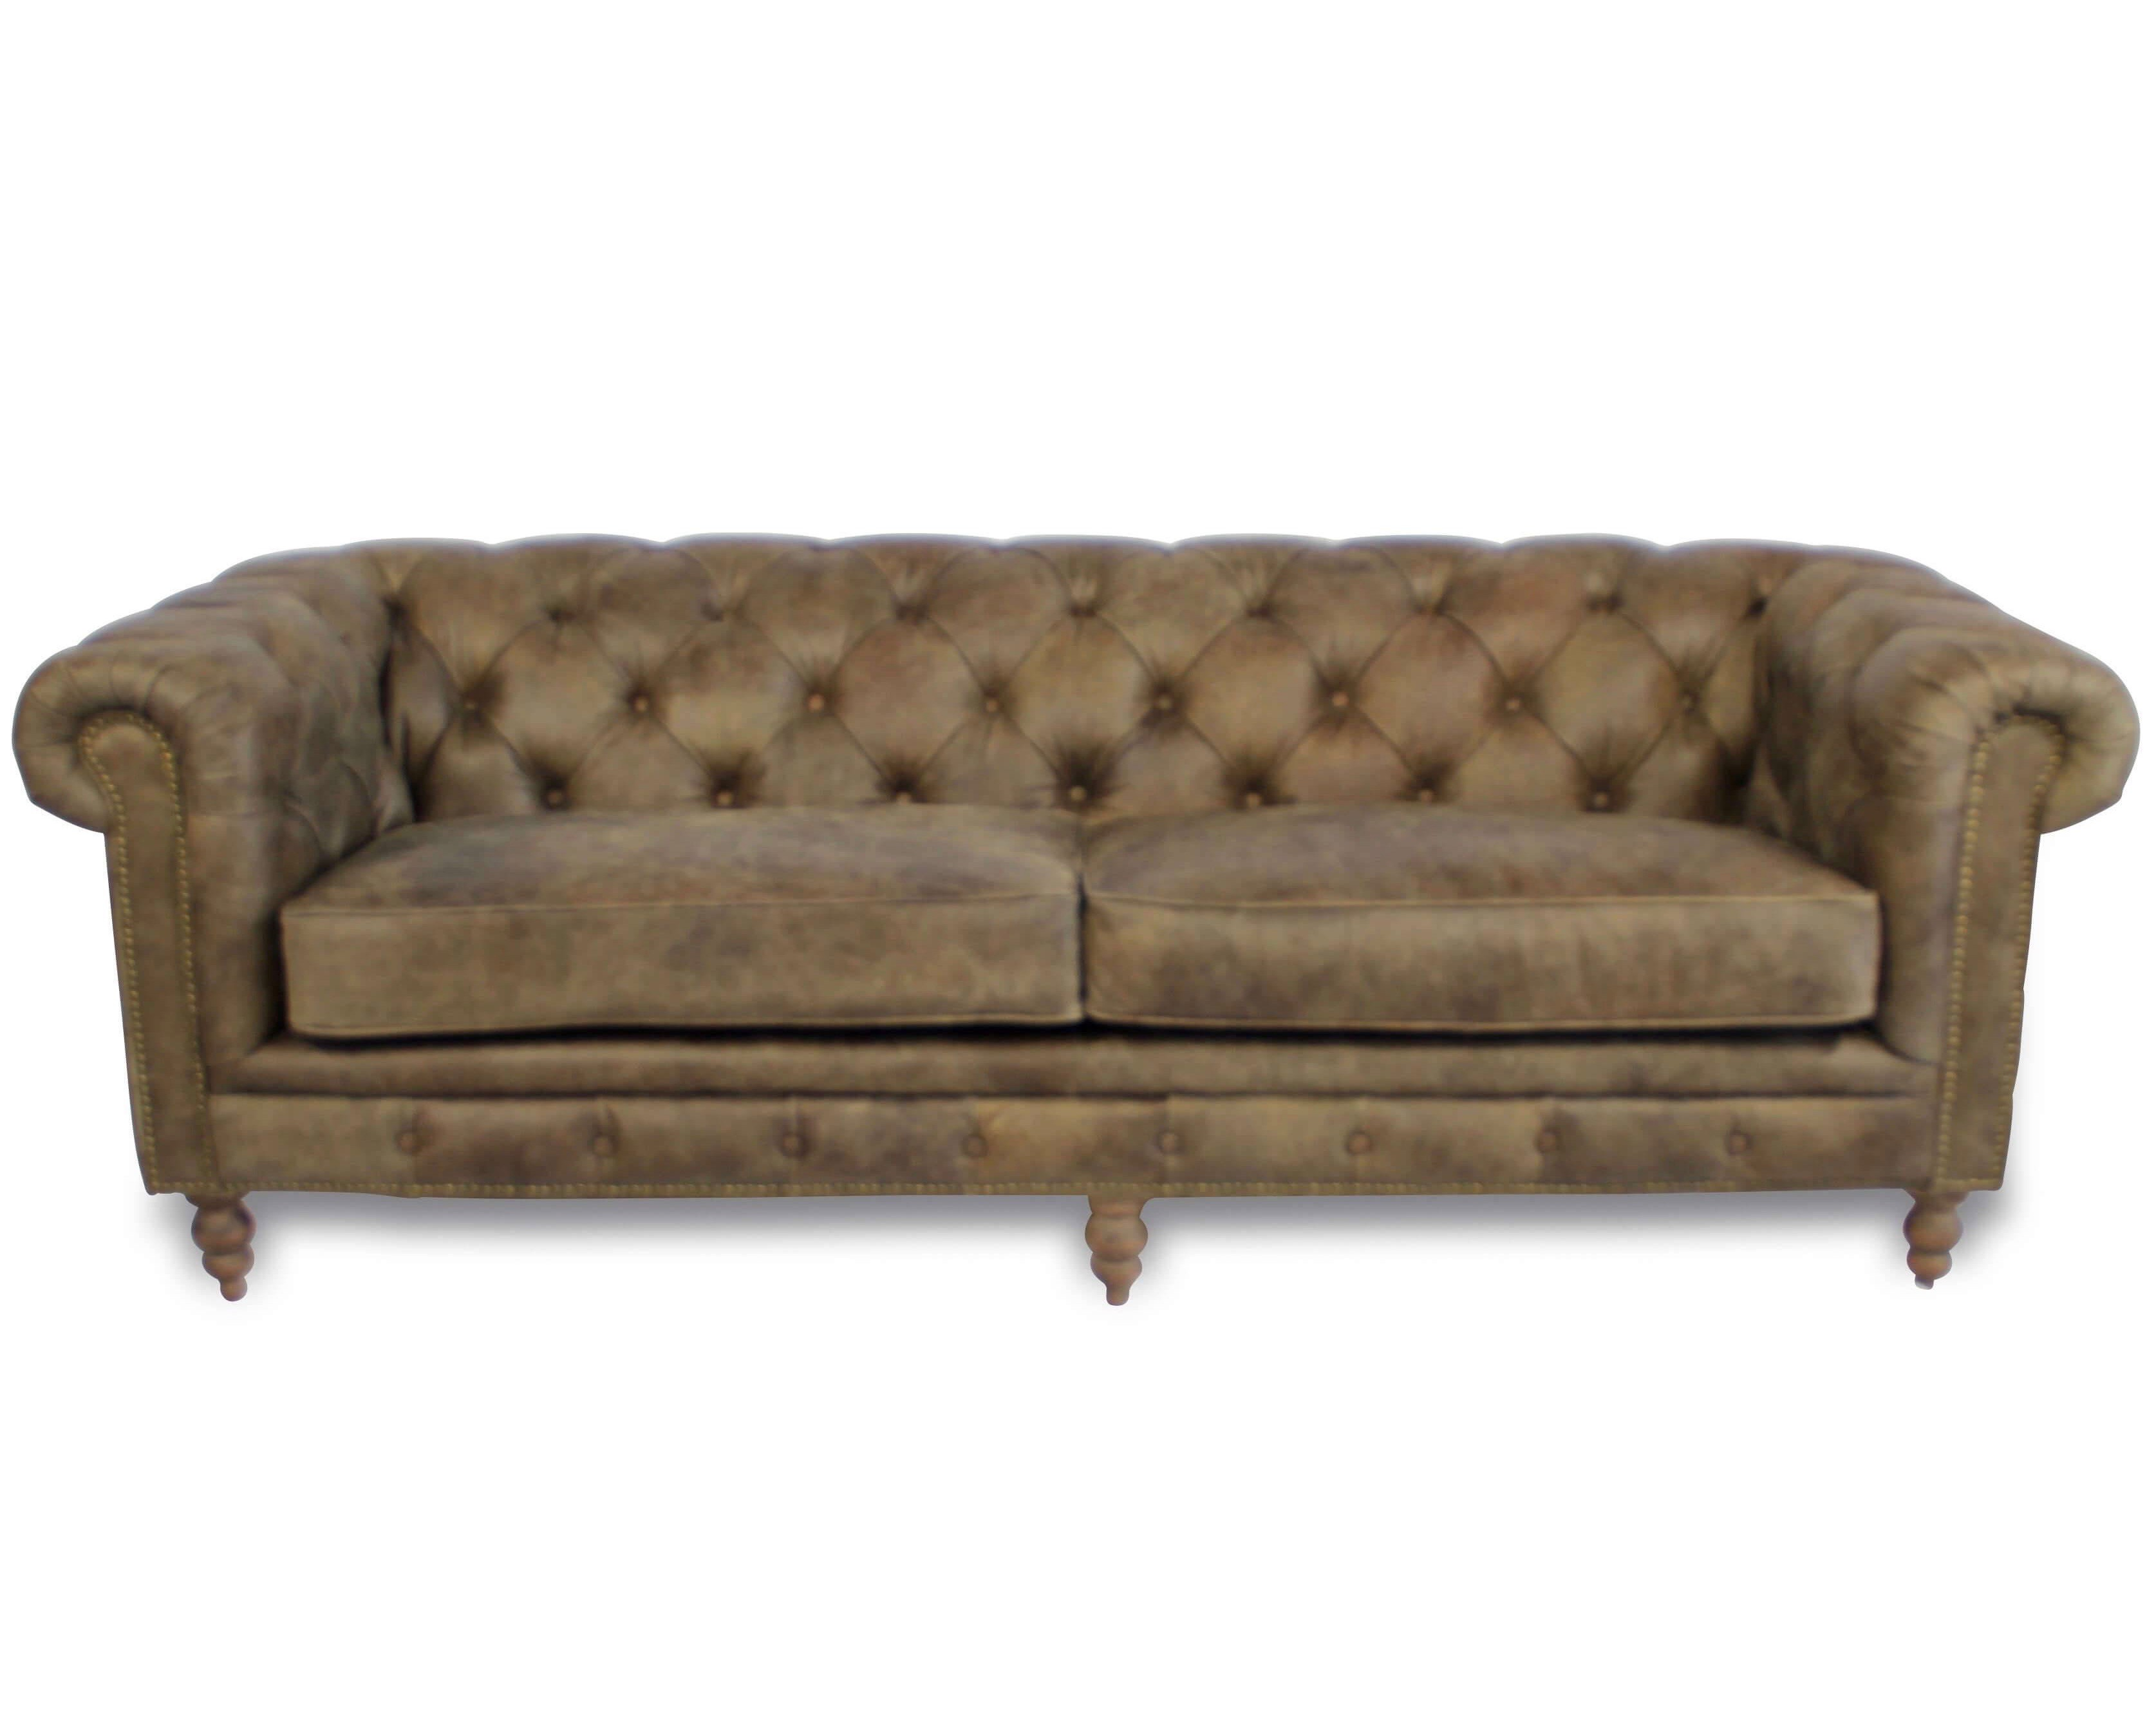 Alte Ledercouch Chesterfield \